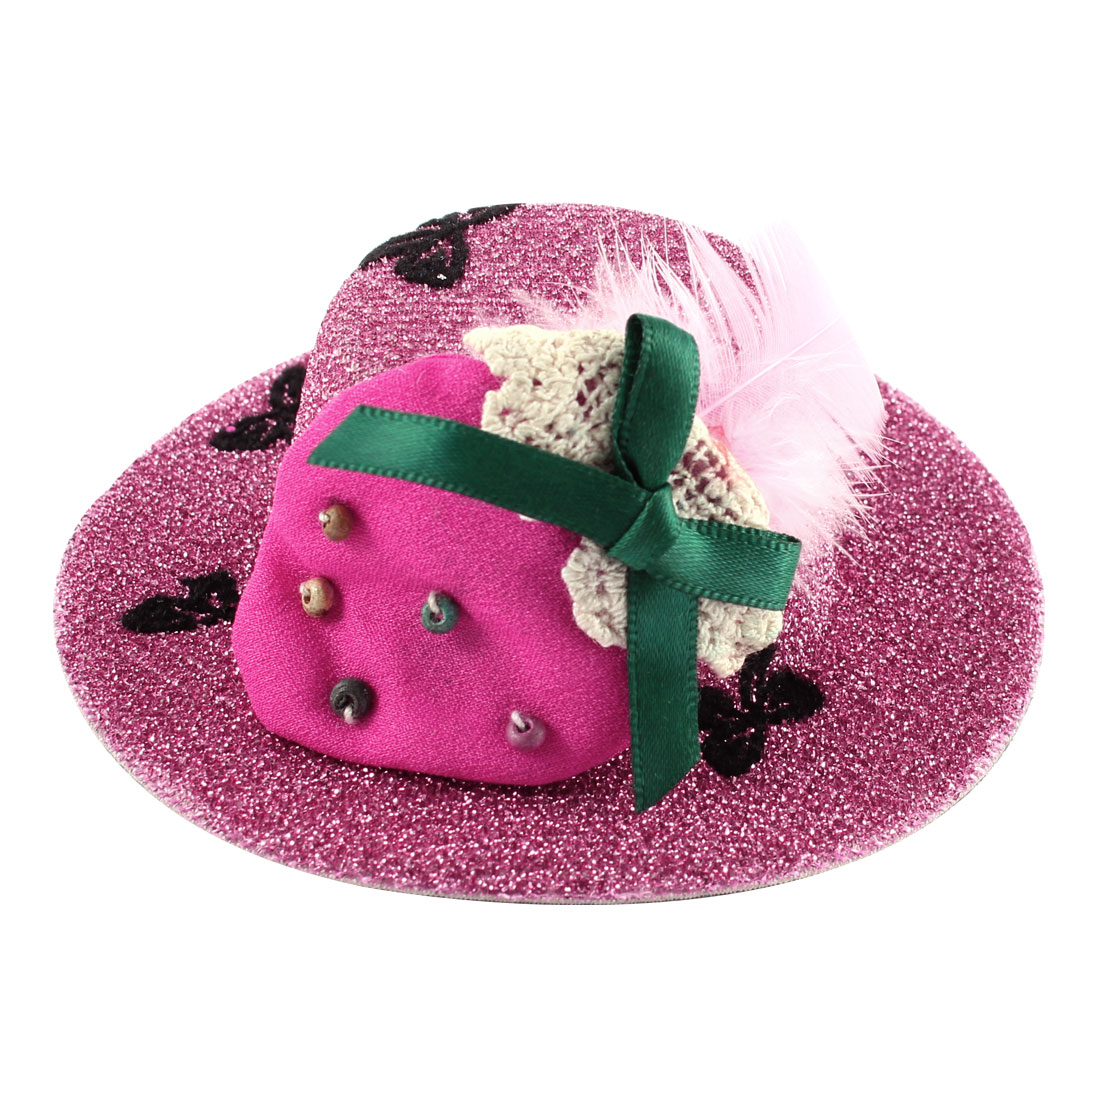 Lady Bowknot Print Fuchsia Strawberry Detail Glittery Tinsel Coated Top Hat Hairclip Pink